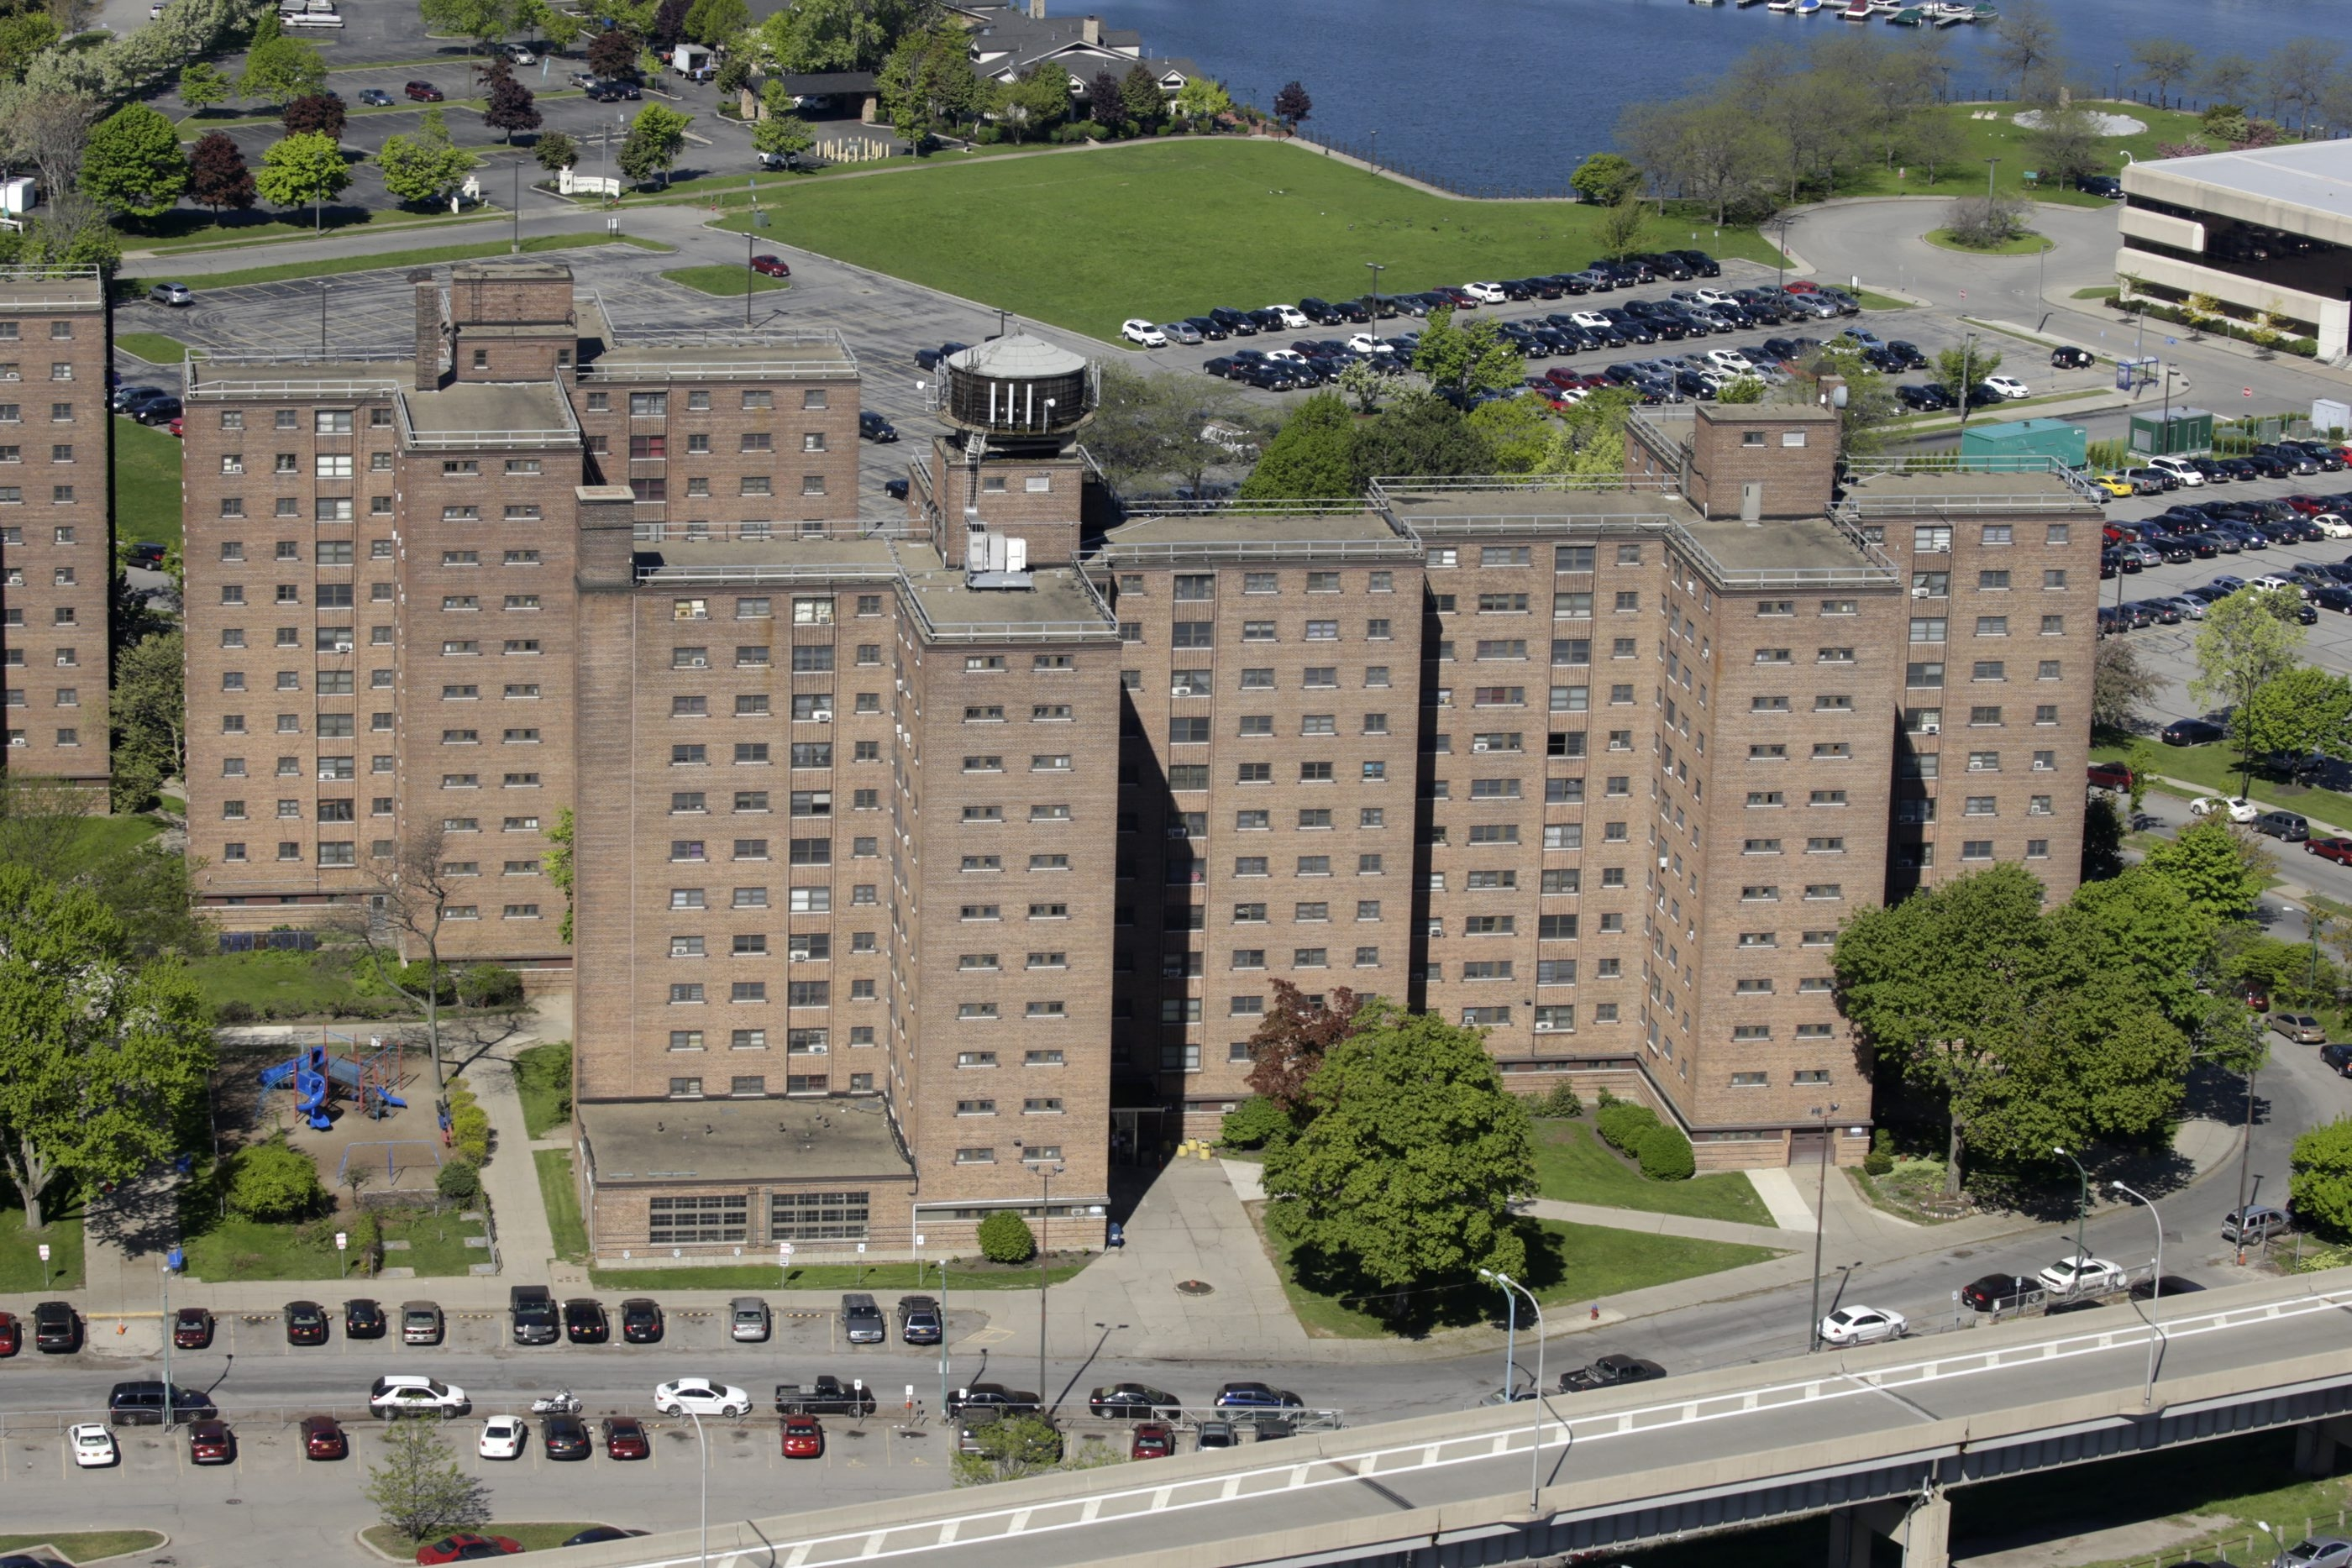 The Marine Drive Apartments, photographed from the 29th floor of the Seneca One tower.  Millions of dollars would be needed to renovate the deteriorating complex. (John Hickey/Buffalo News)